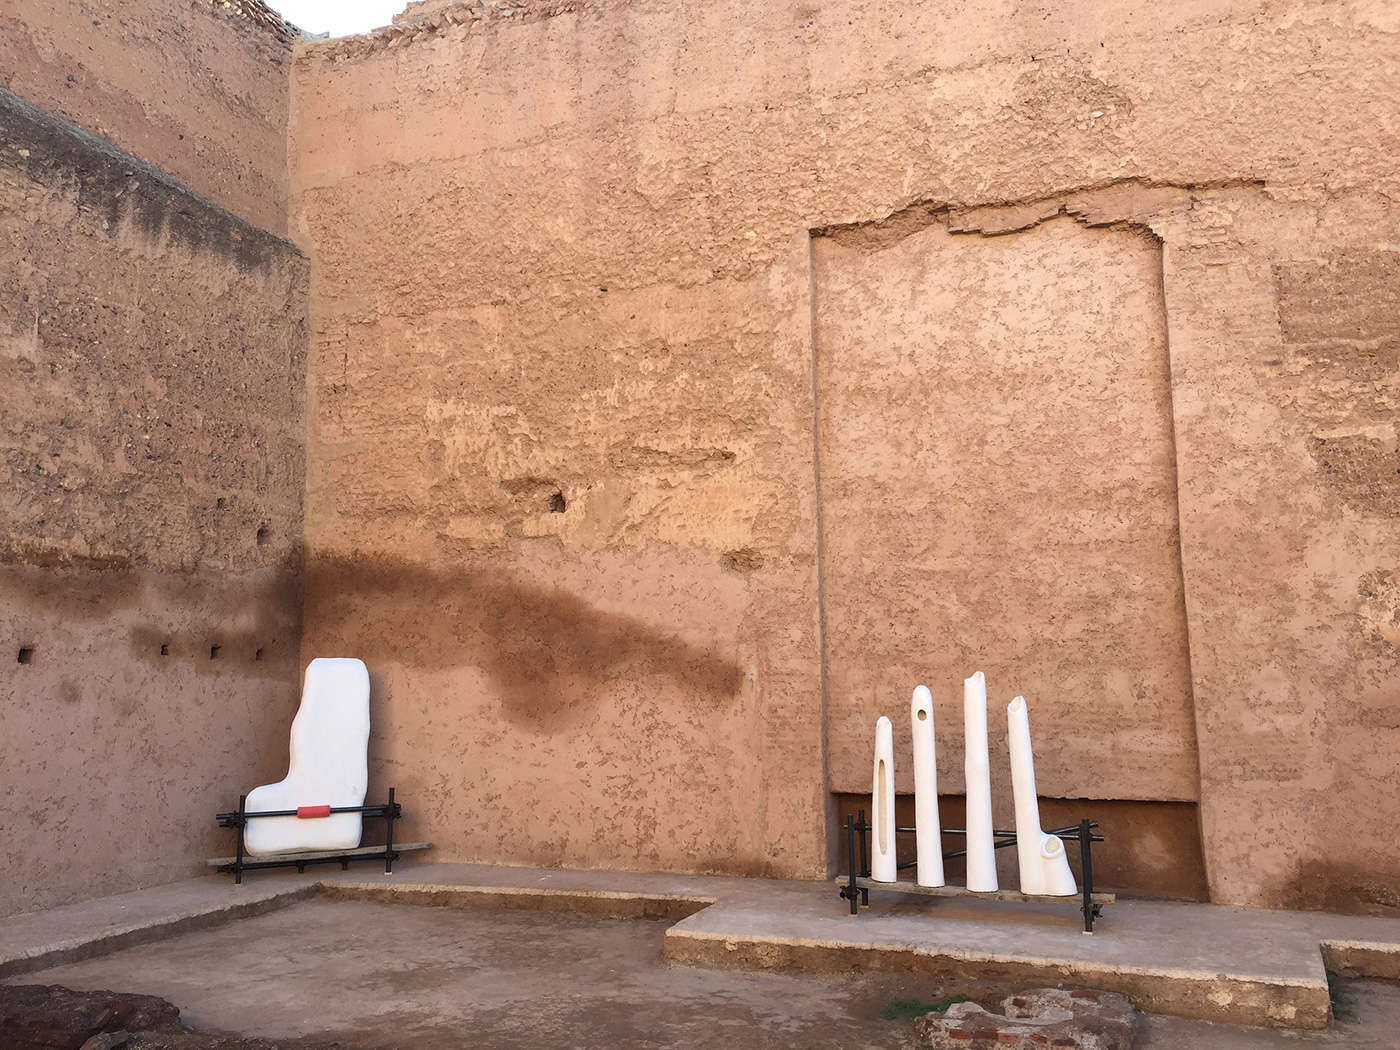 Sculptures by Jumana Manna riff off the forms in El Badii Palace, where they are installed.